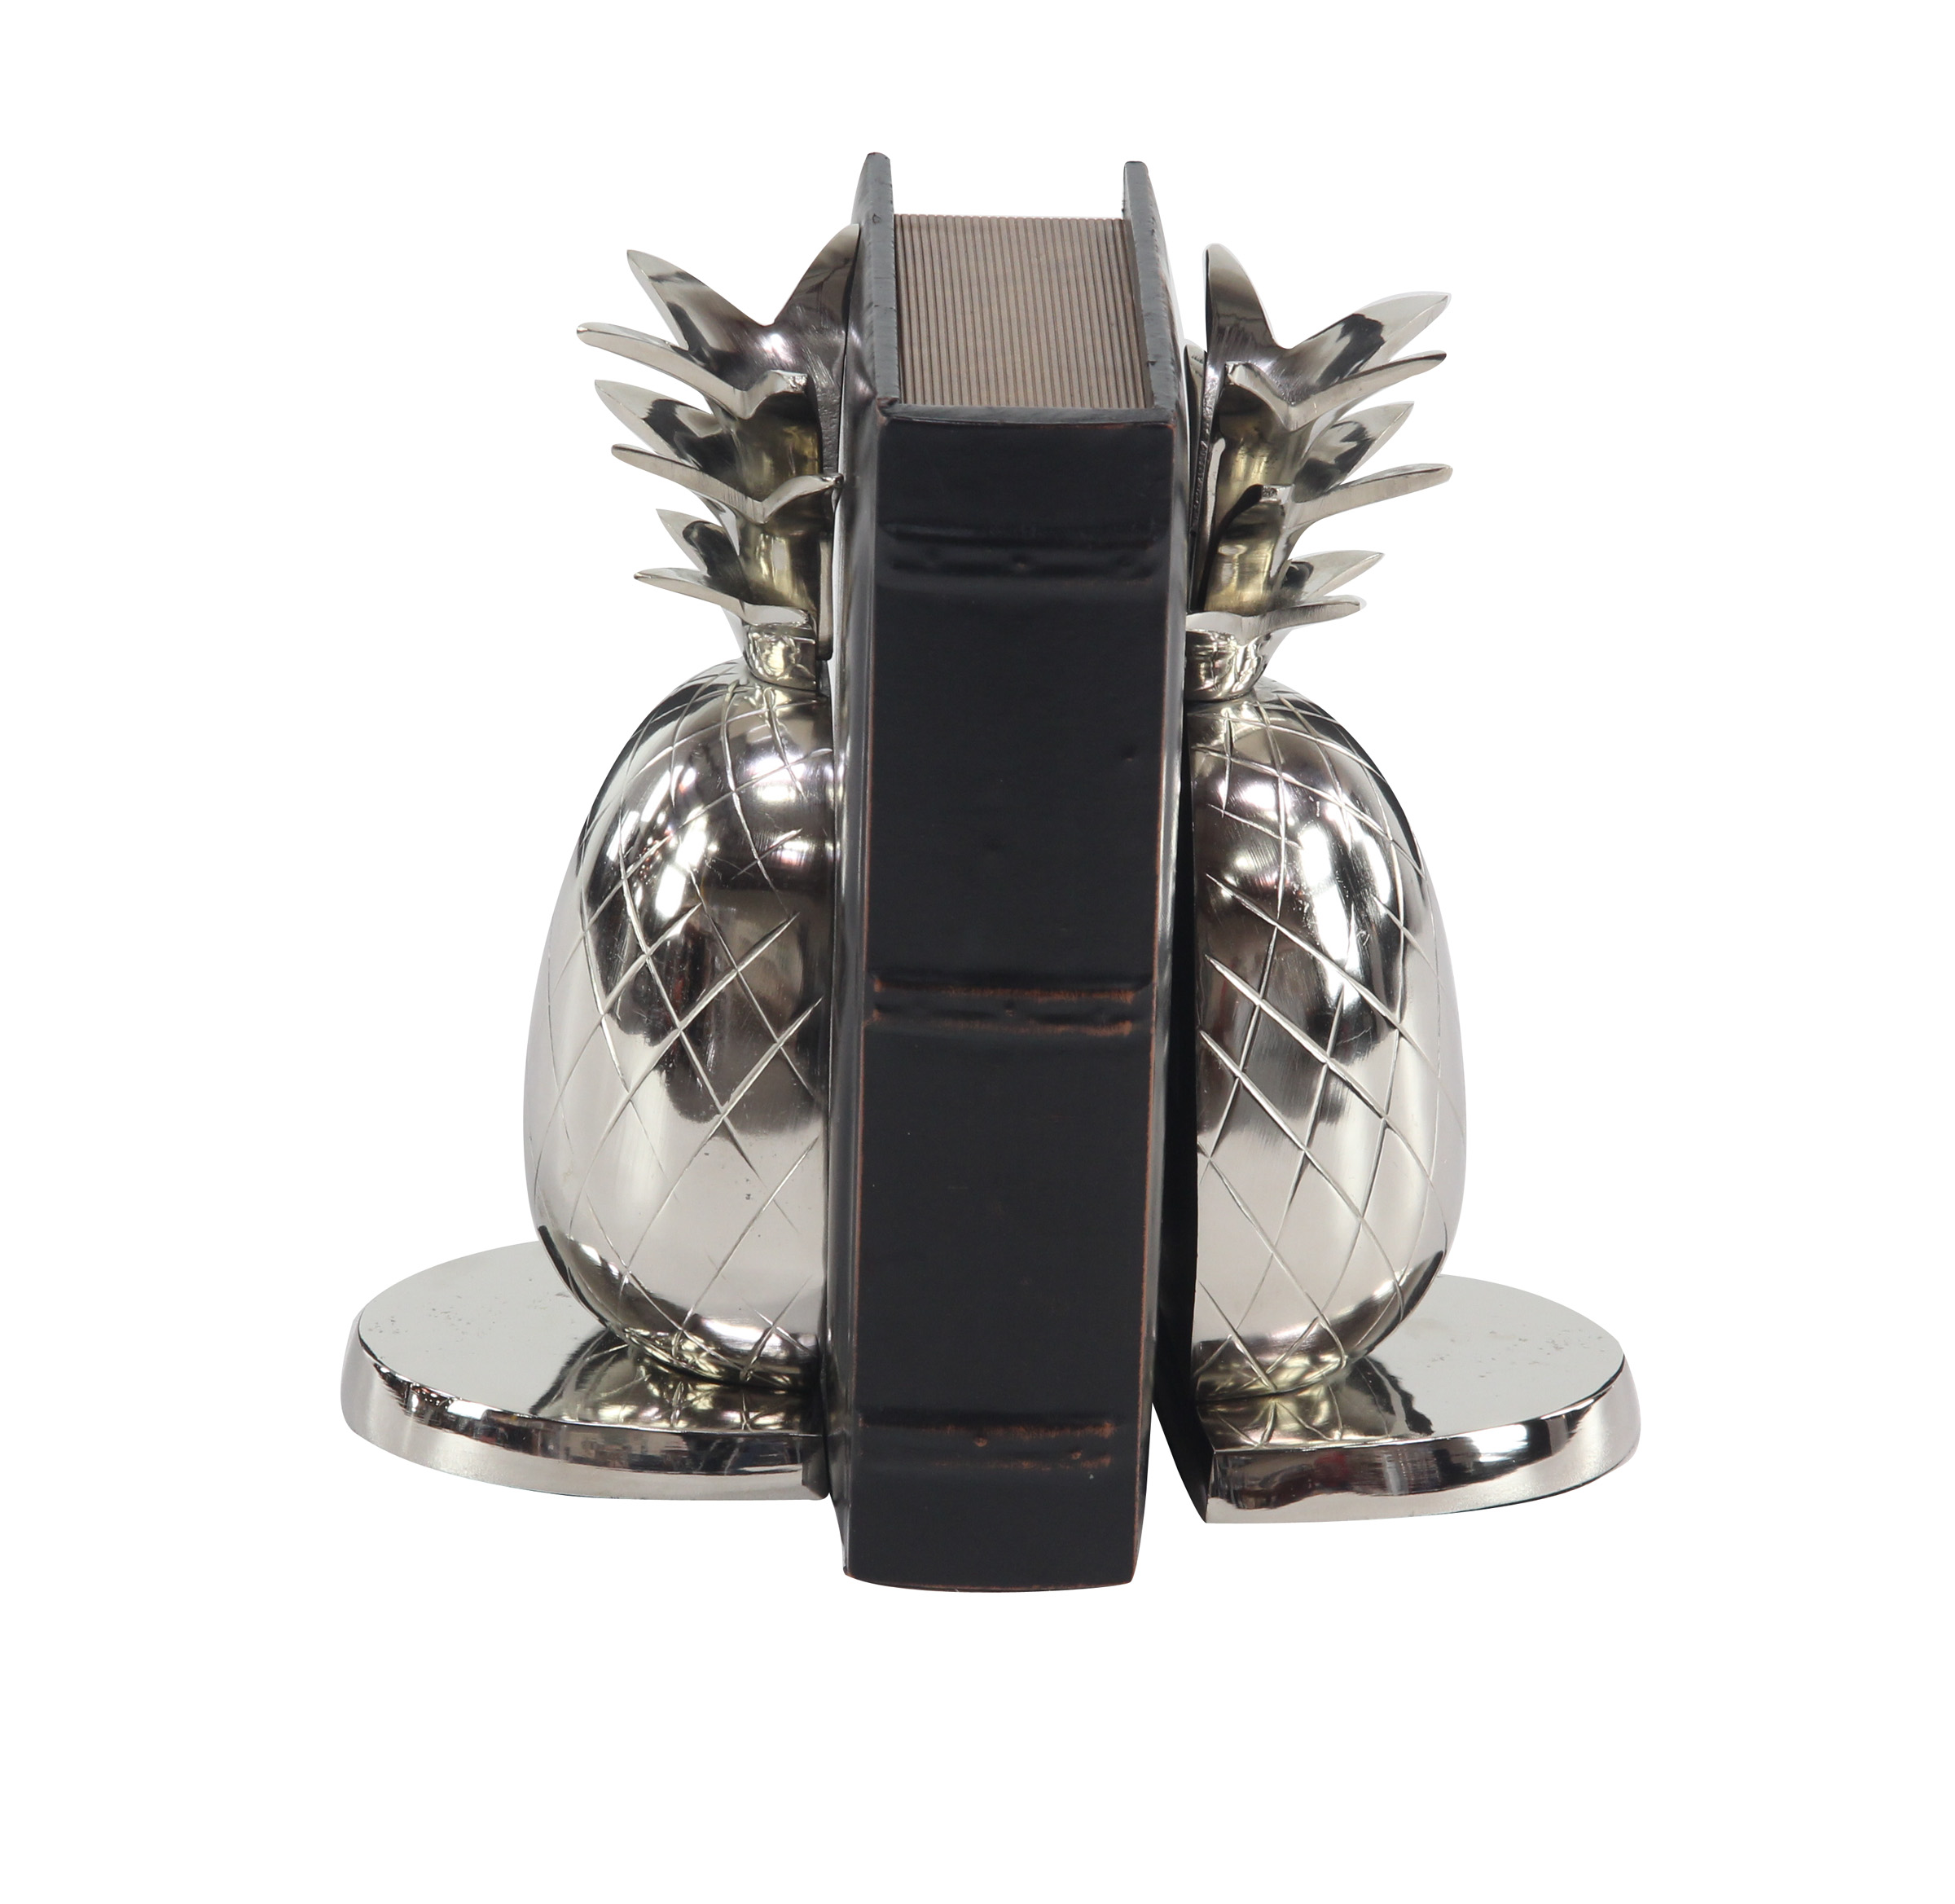 Decmode Pair Of Modern 10 Inch Silver Aluminum Pineapple Bookends